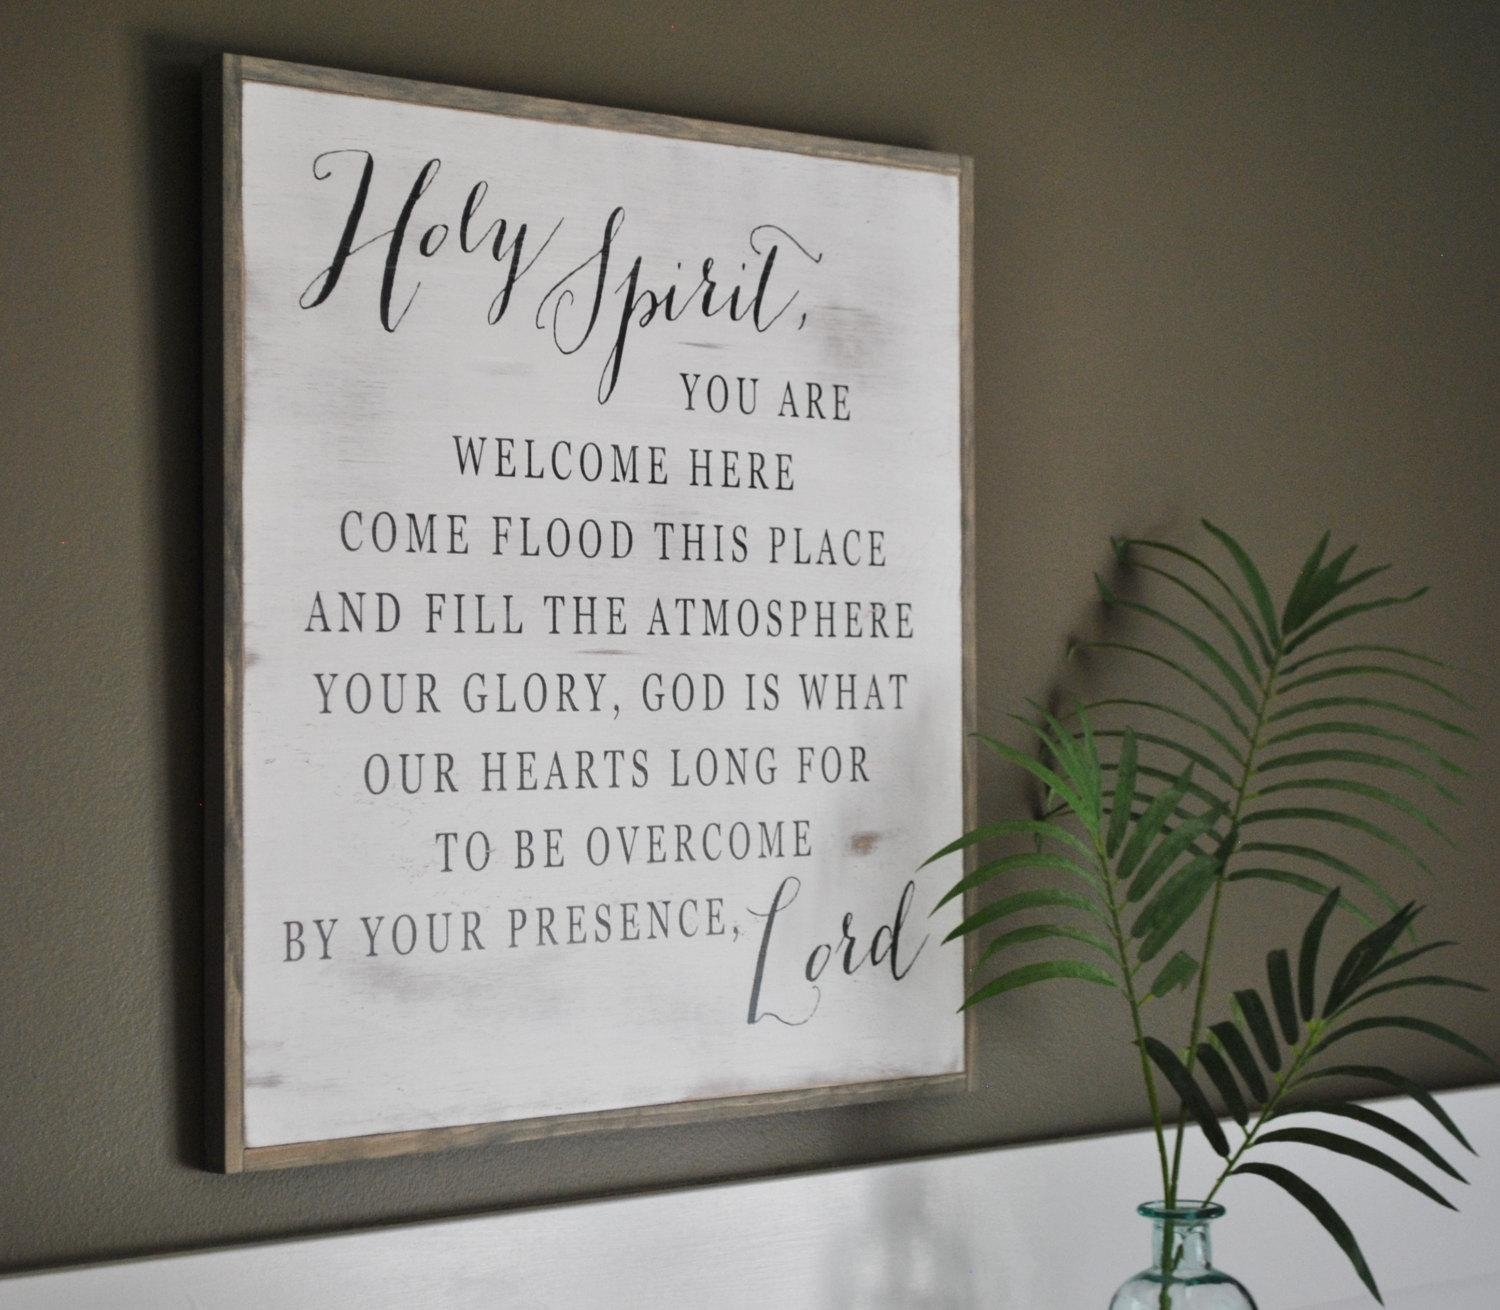 Holy Spirit 2'x2' || Inspirational Wall Art || Distressed Shabby Regarding Inspirational Wall Plaques (Image 2 of 20)